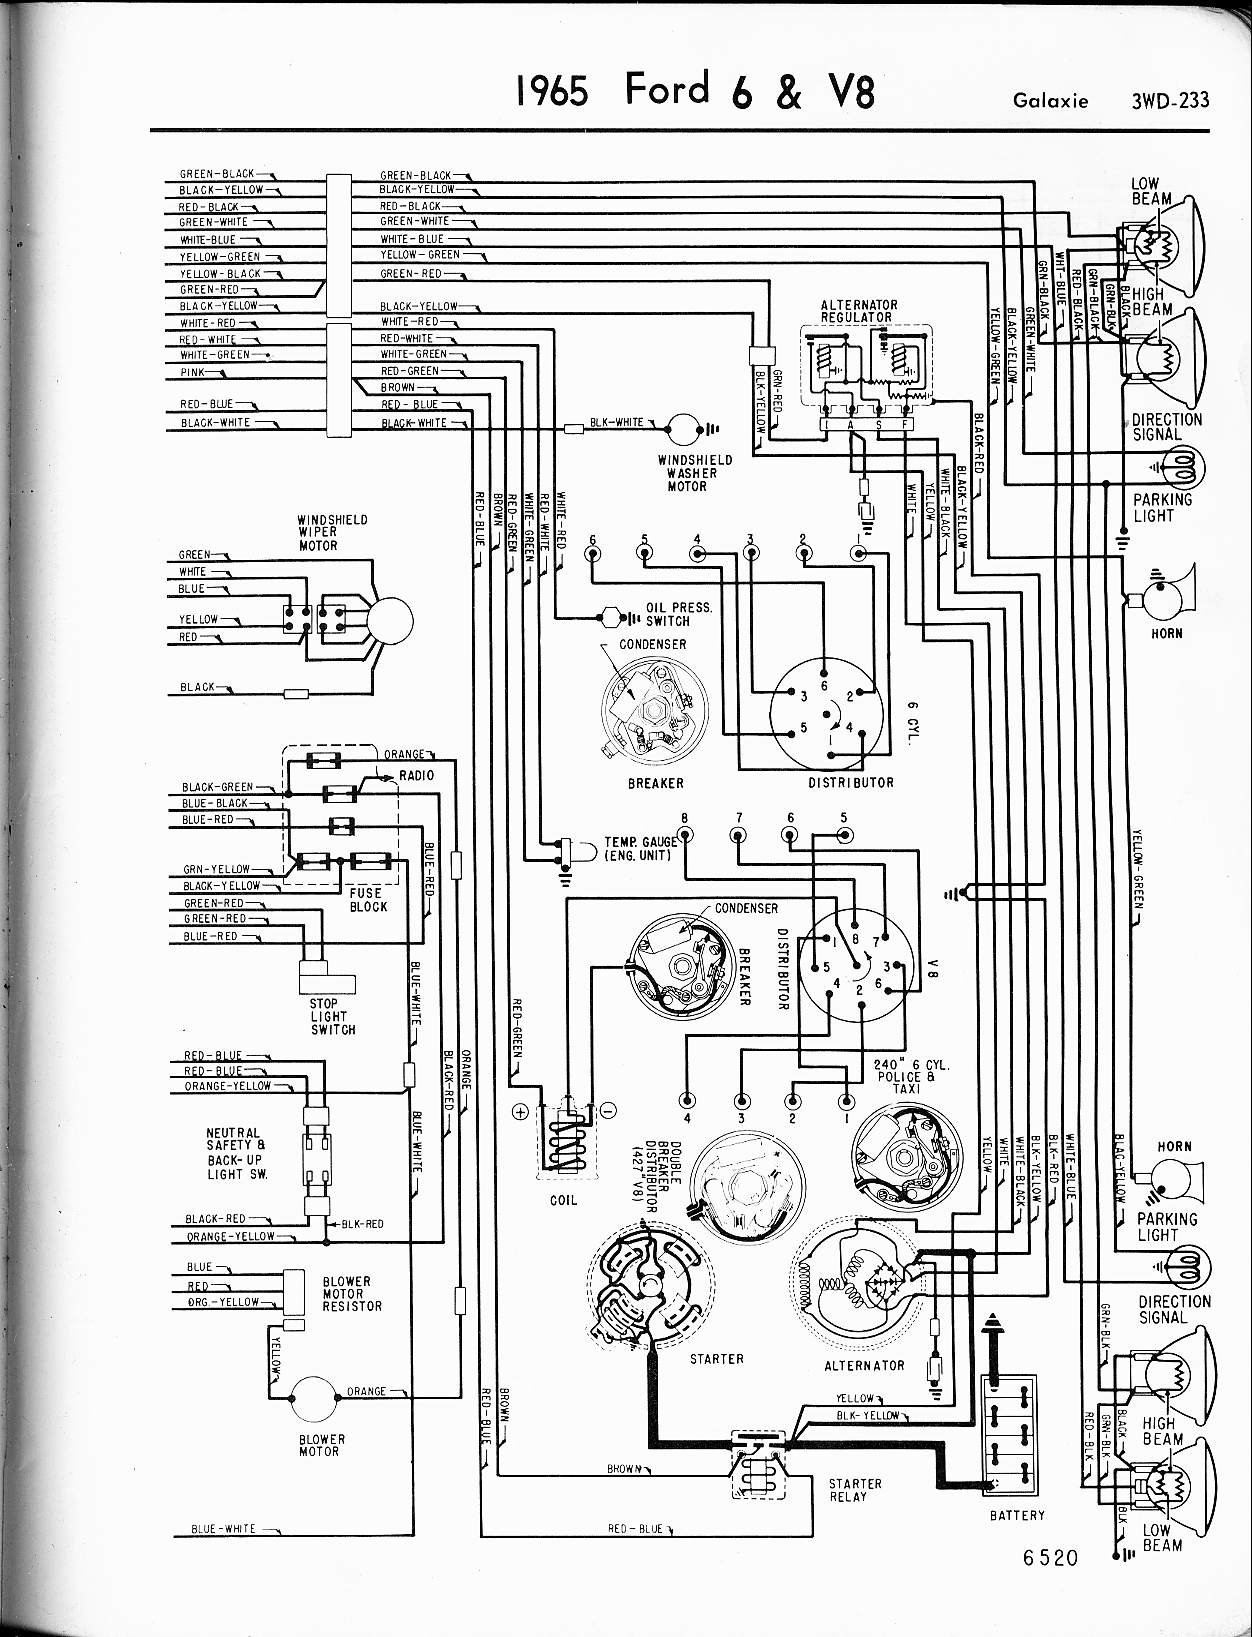 332-428 Ford FE Engine Forum: Wiring question, the black